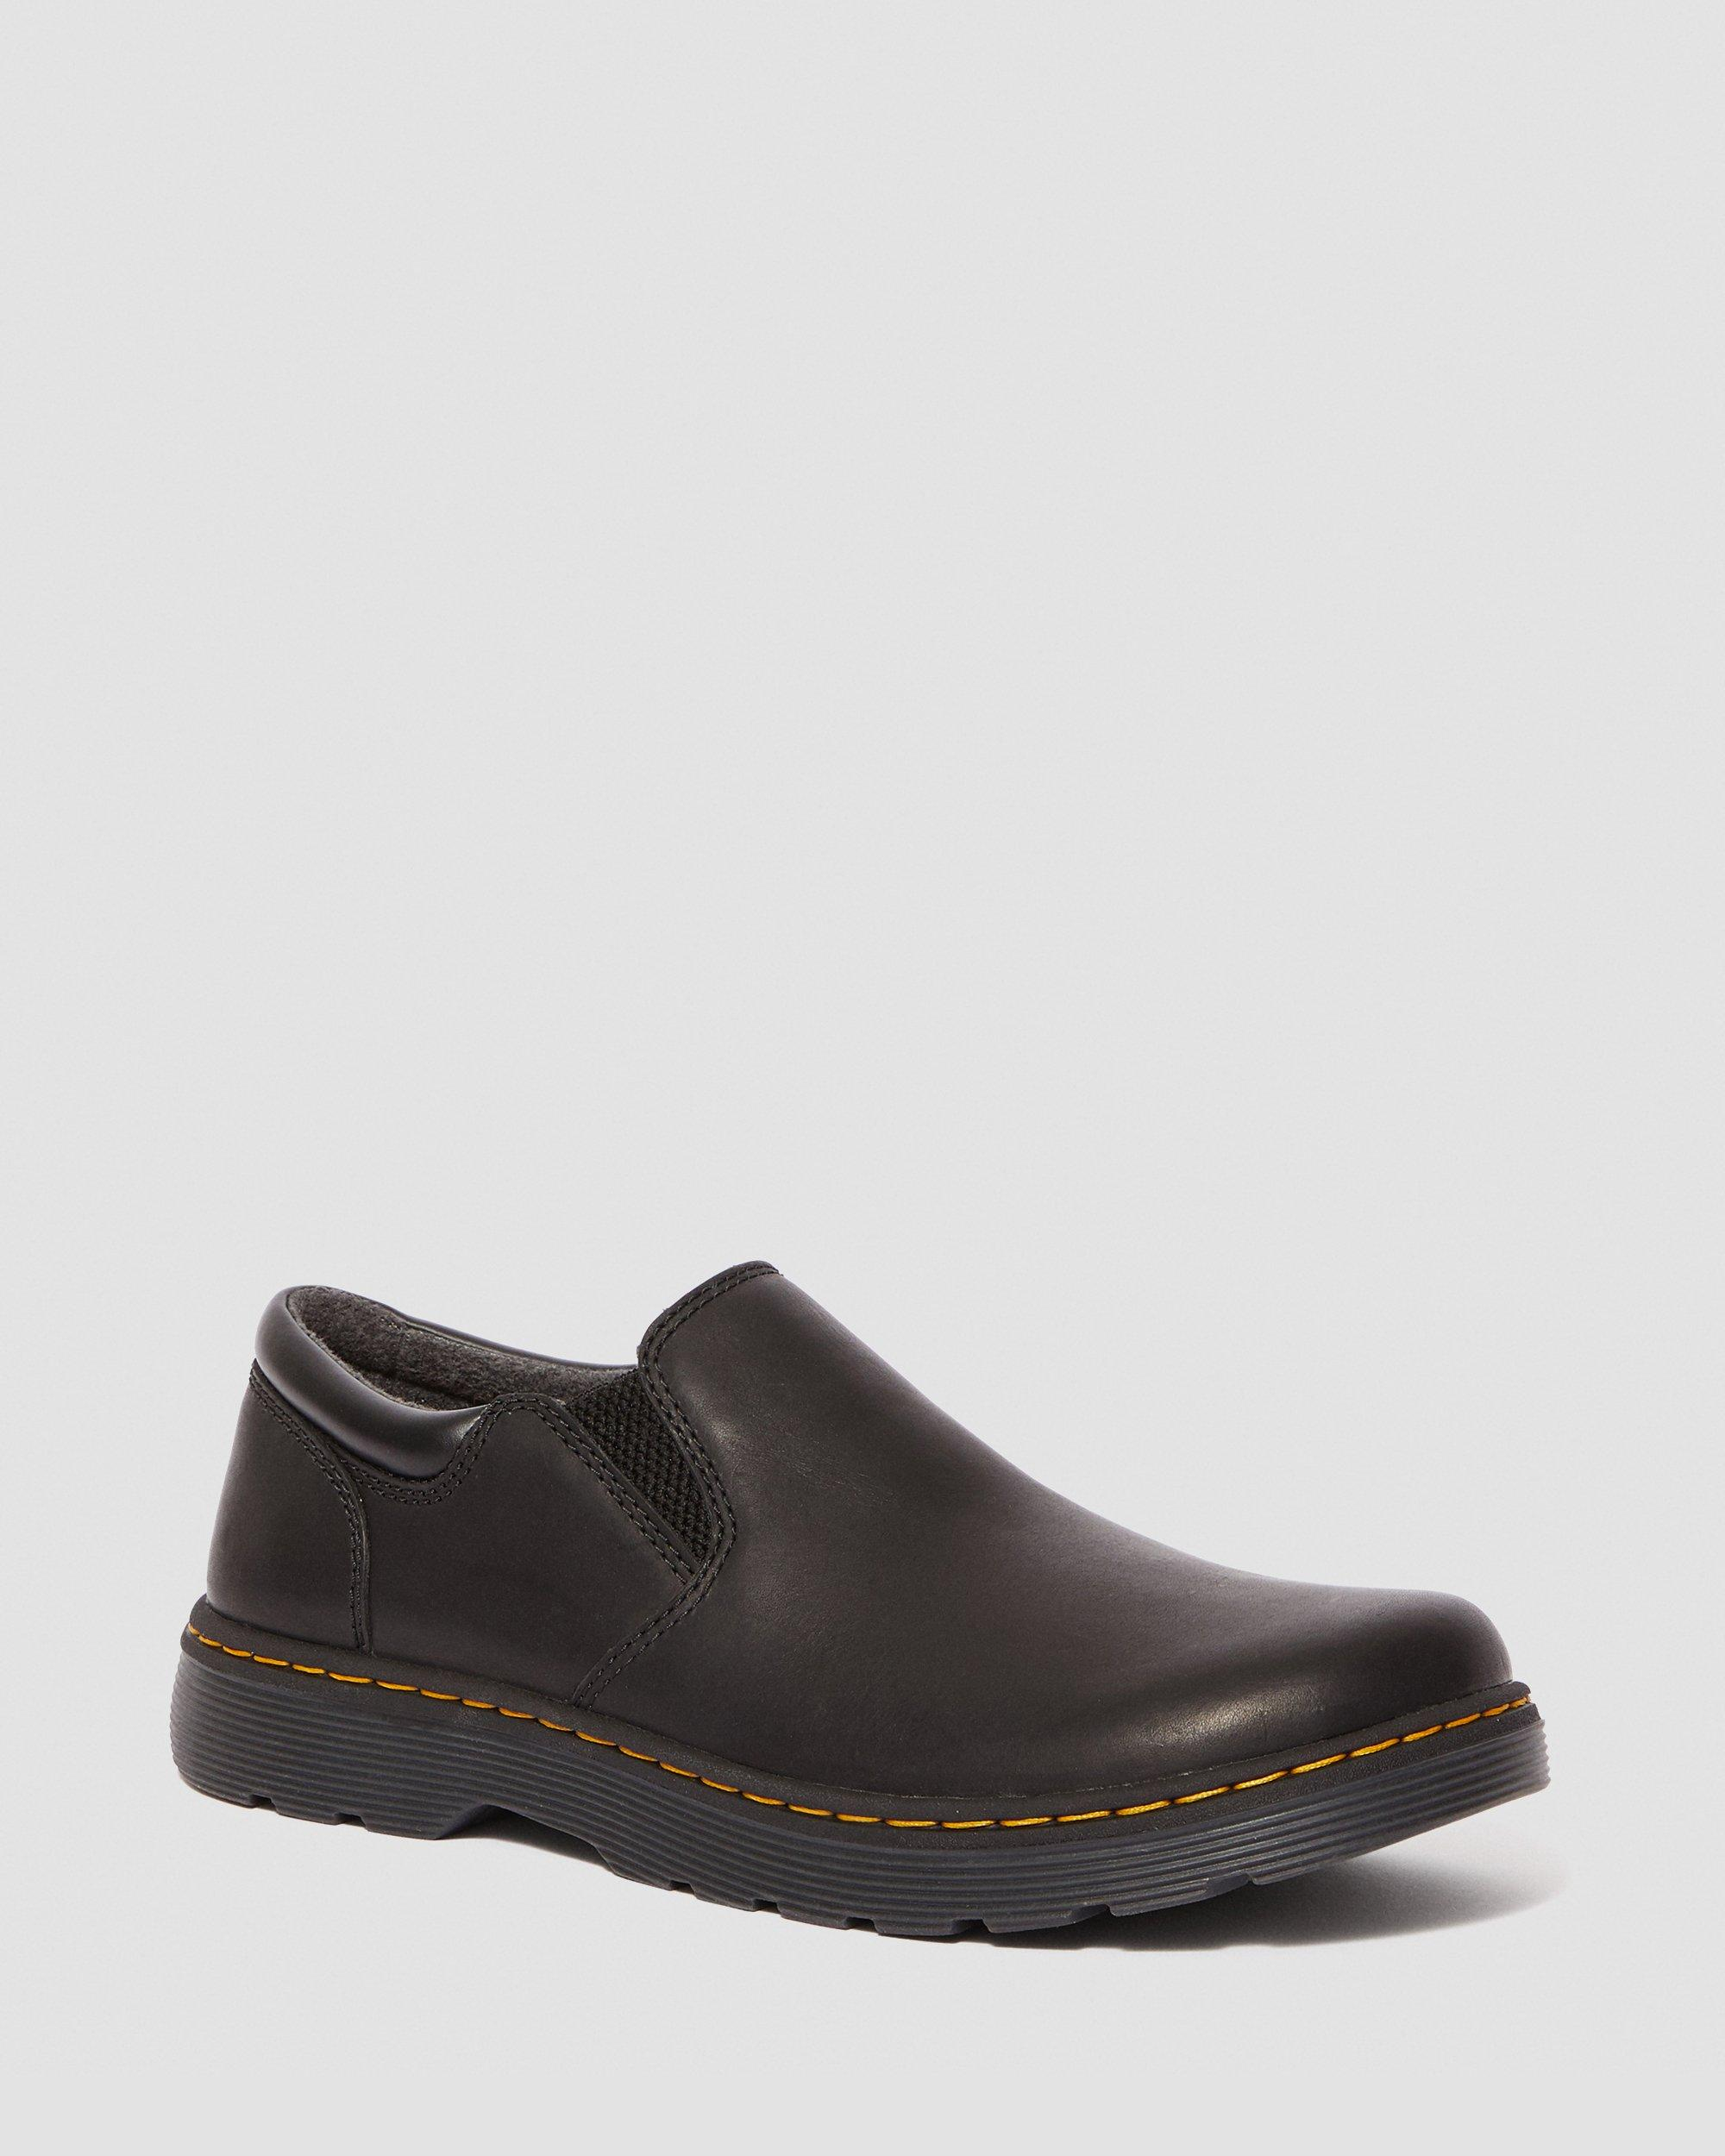 TIPTON LEATHER SLIP ON SHOES | Dr